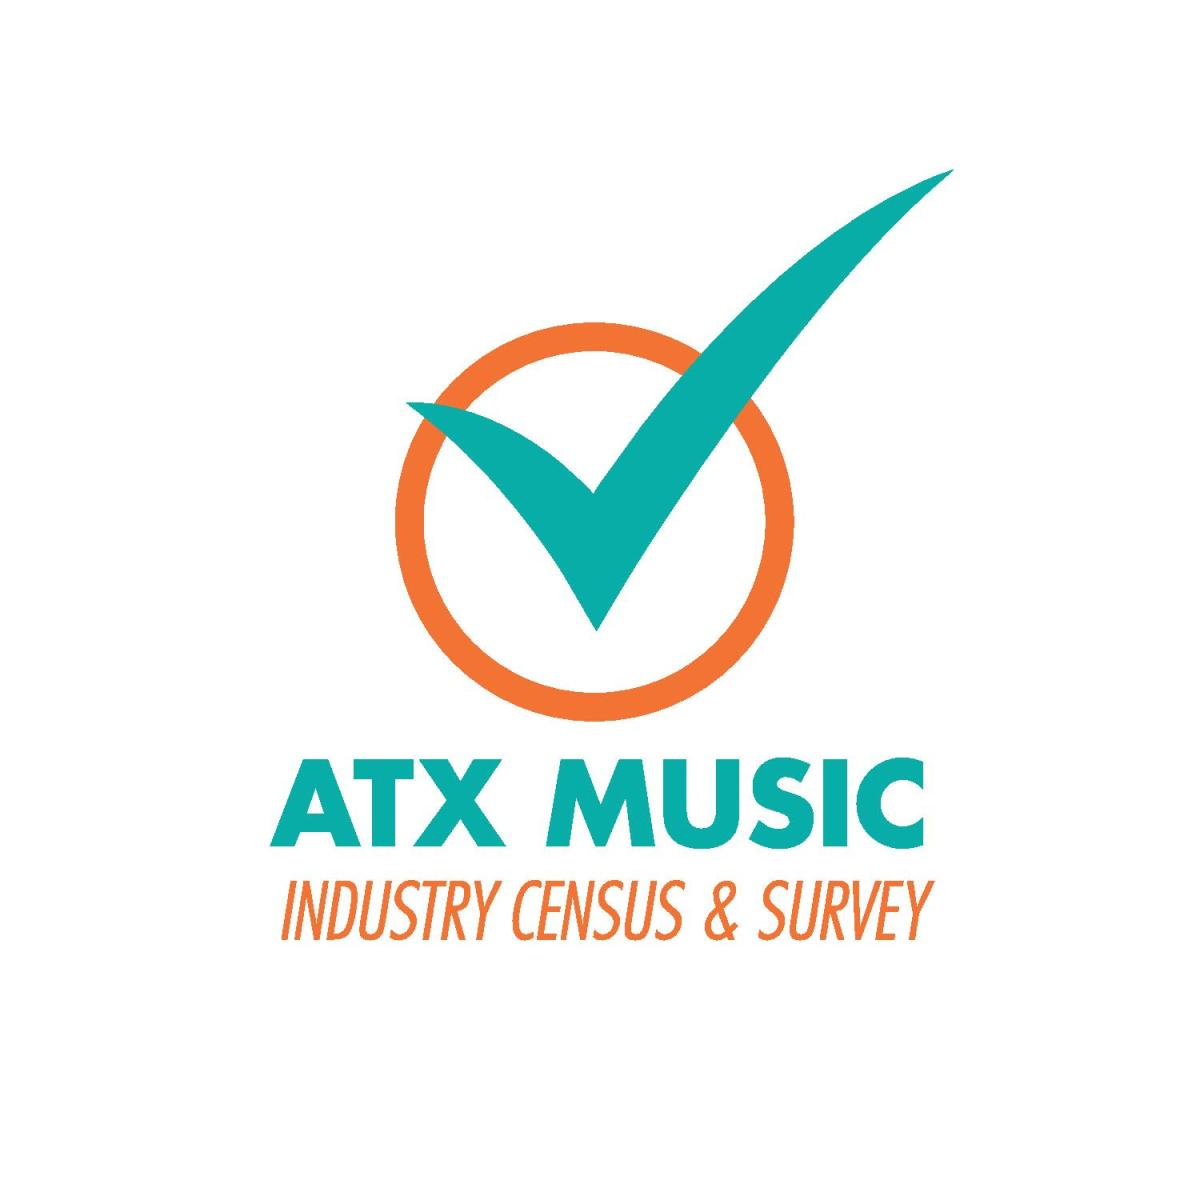 TELL THE AUSTIN MUSIC OFFICE WHAT YOU THINK - TAKE THE SURVEY